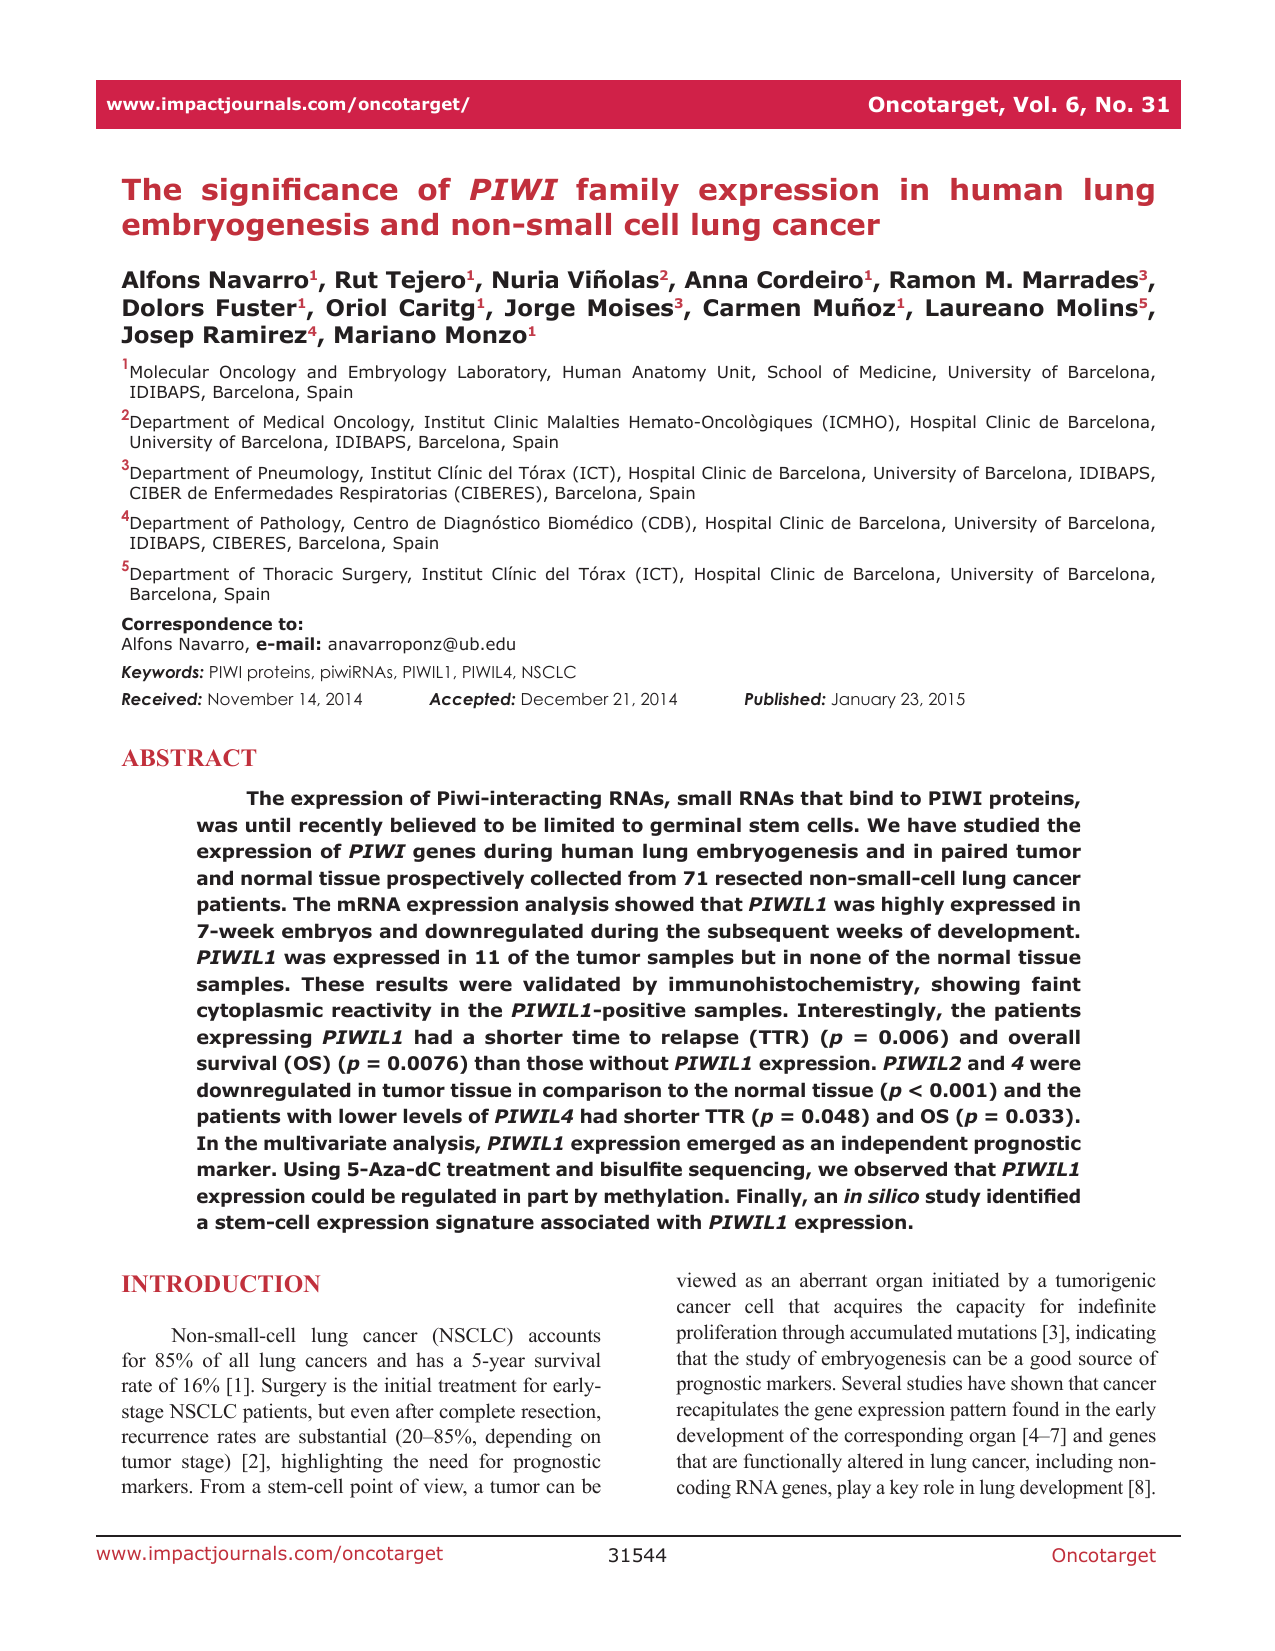 PIWI embryogenesis and non-small cell lung cancer